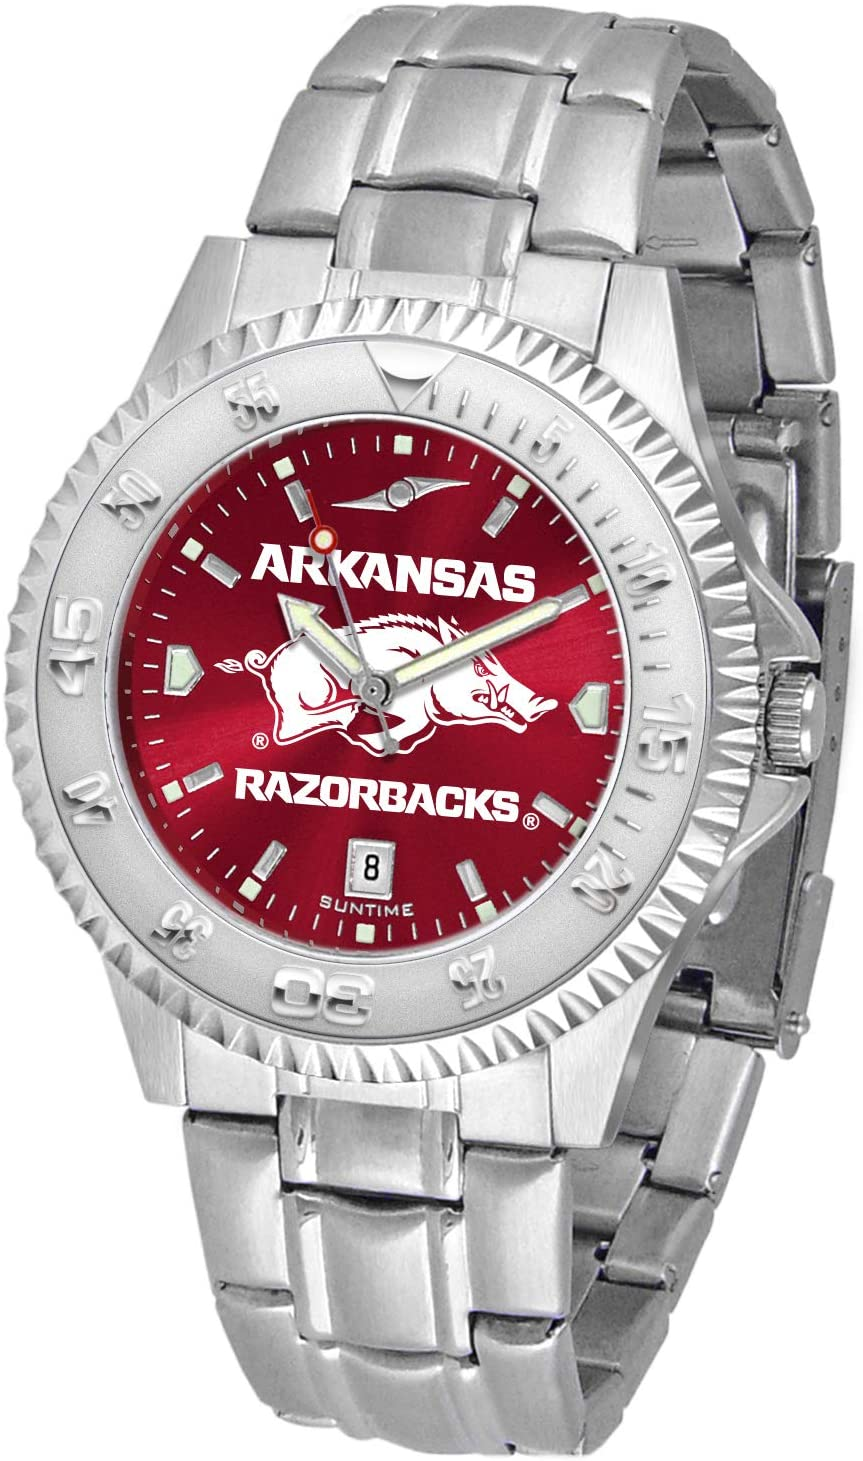 SunTime Arkansas Razorbacks Competitor AnoChrome Men's Watch with Steel Band